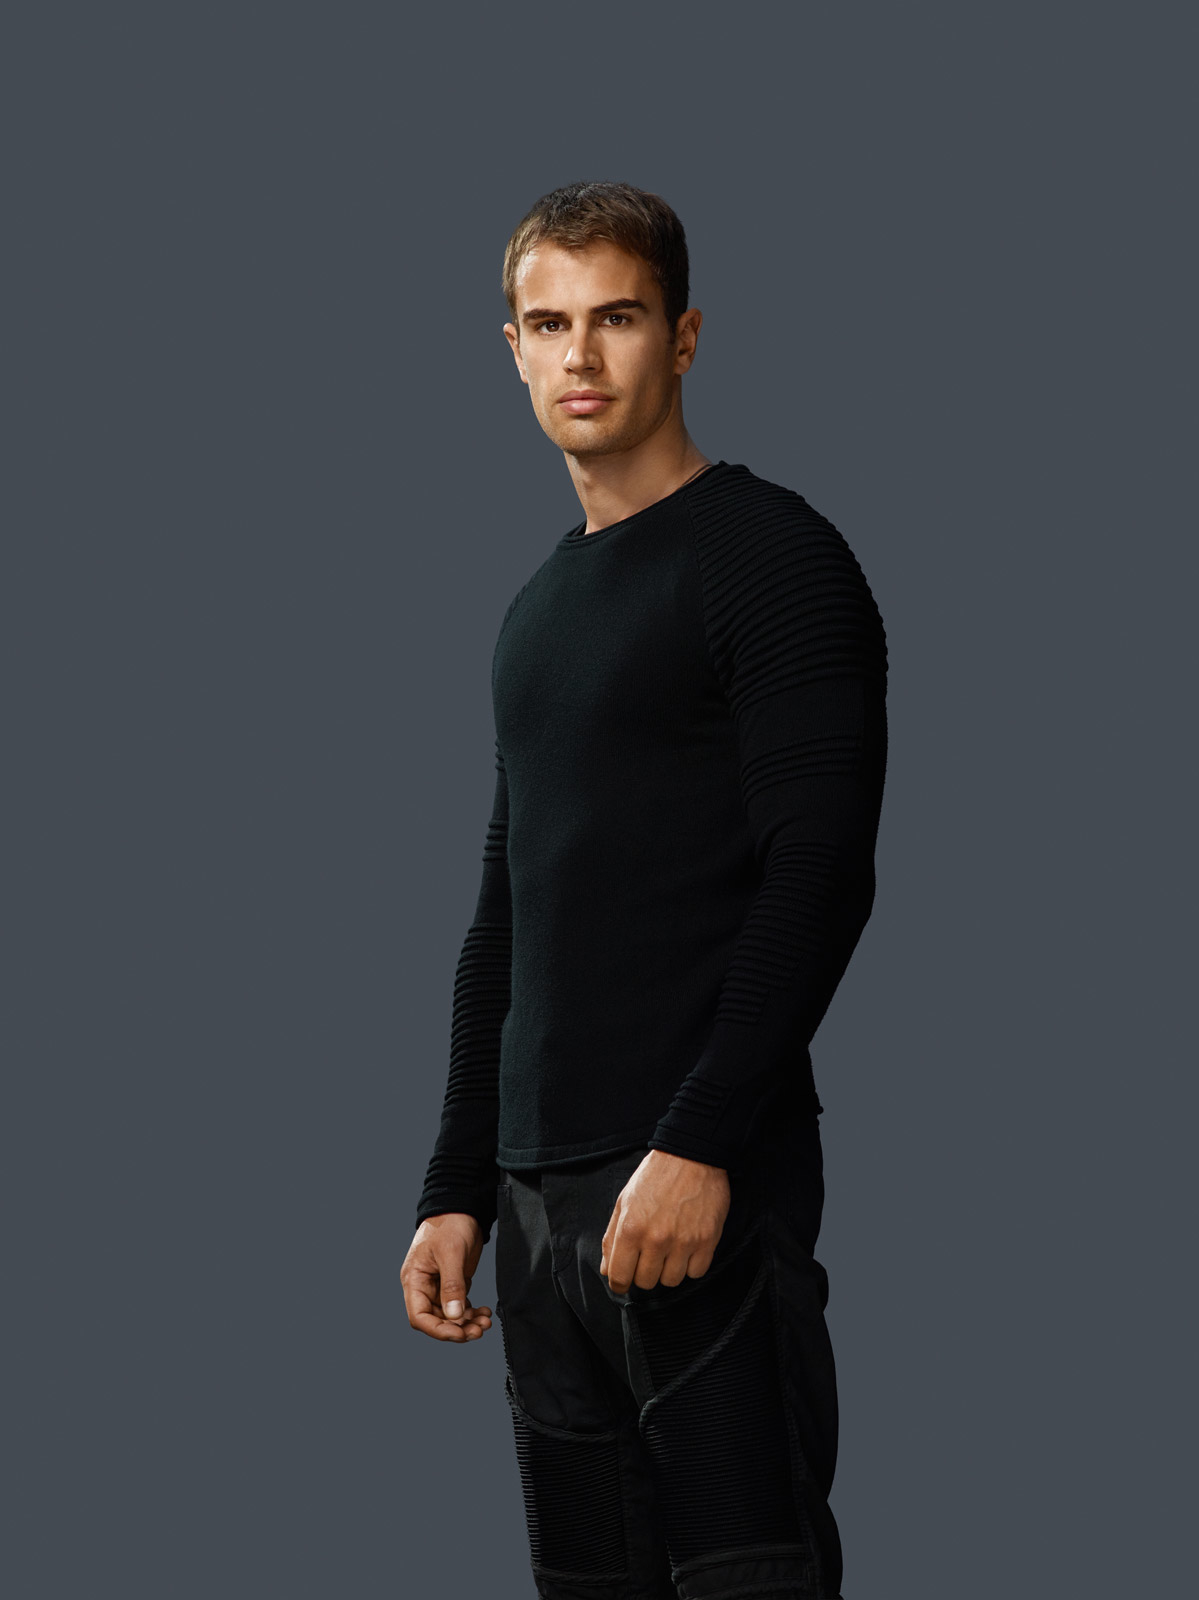 tobias eaton quot4 quotever images tobias eatonquot4quotever hd